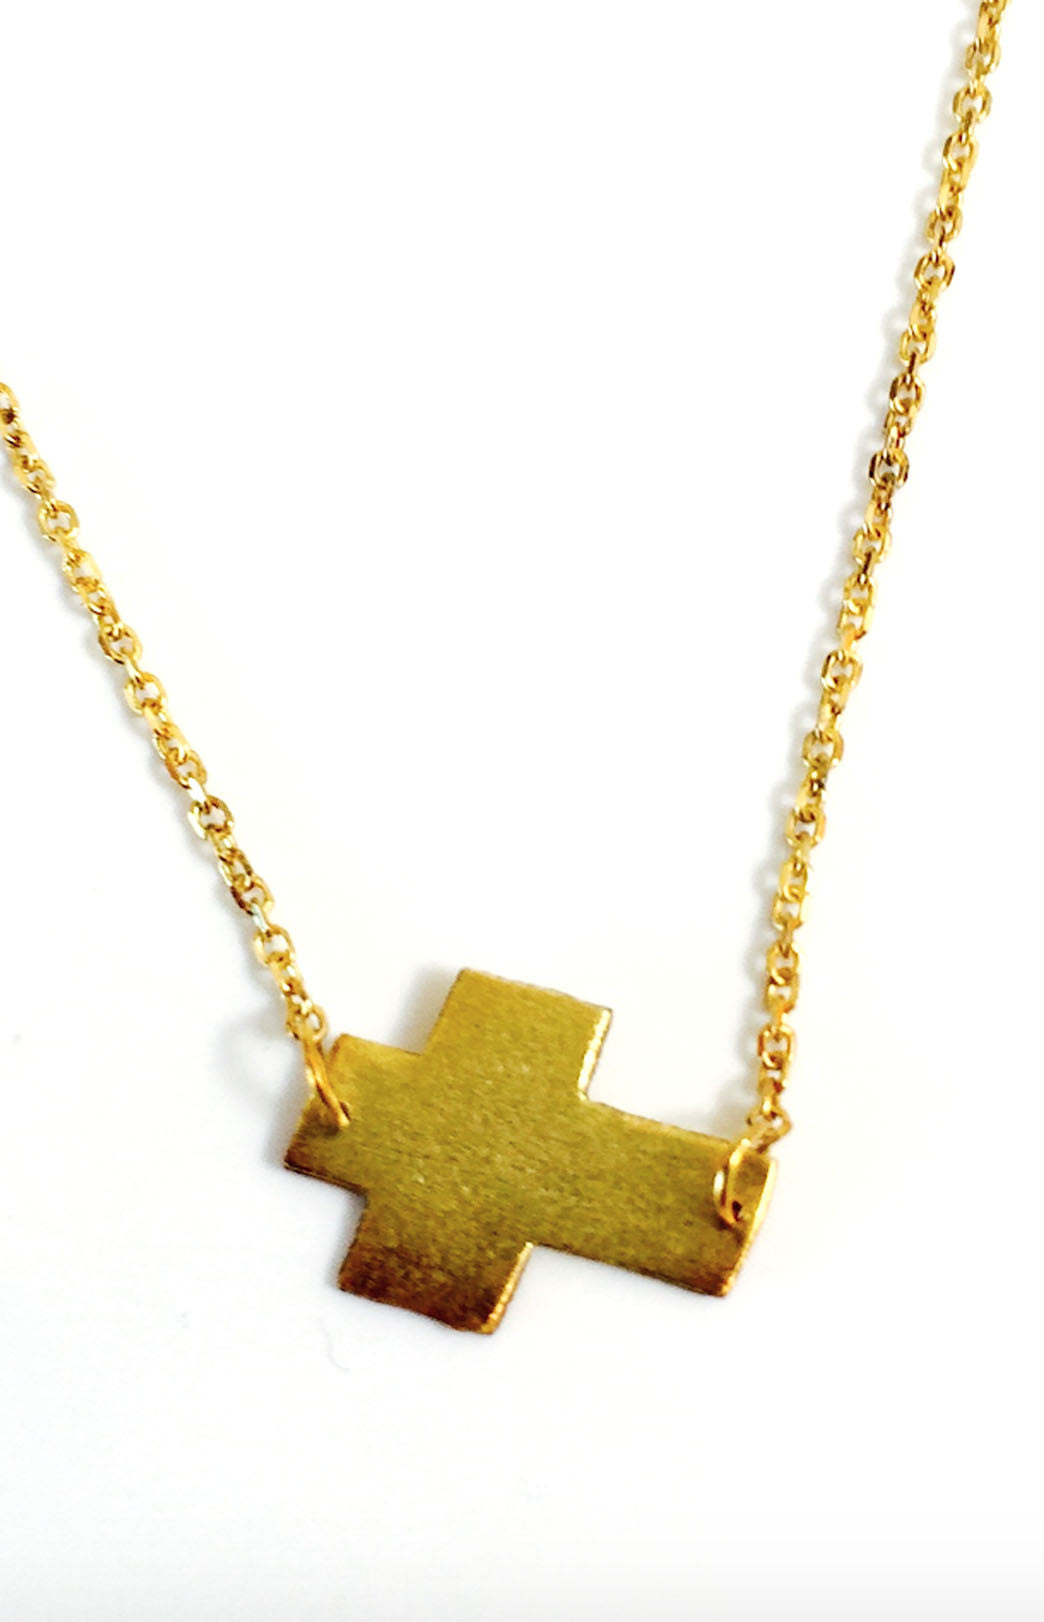 Mark and Estel X Rossmore Cross Necklace in Black, Gold, or Silver